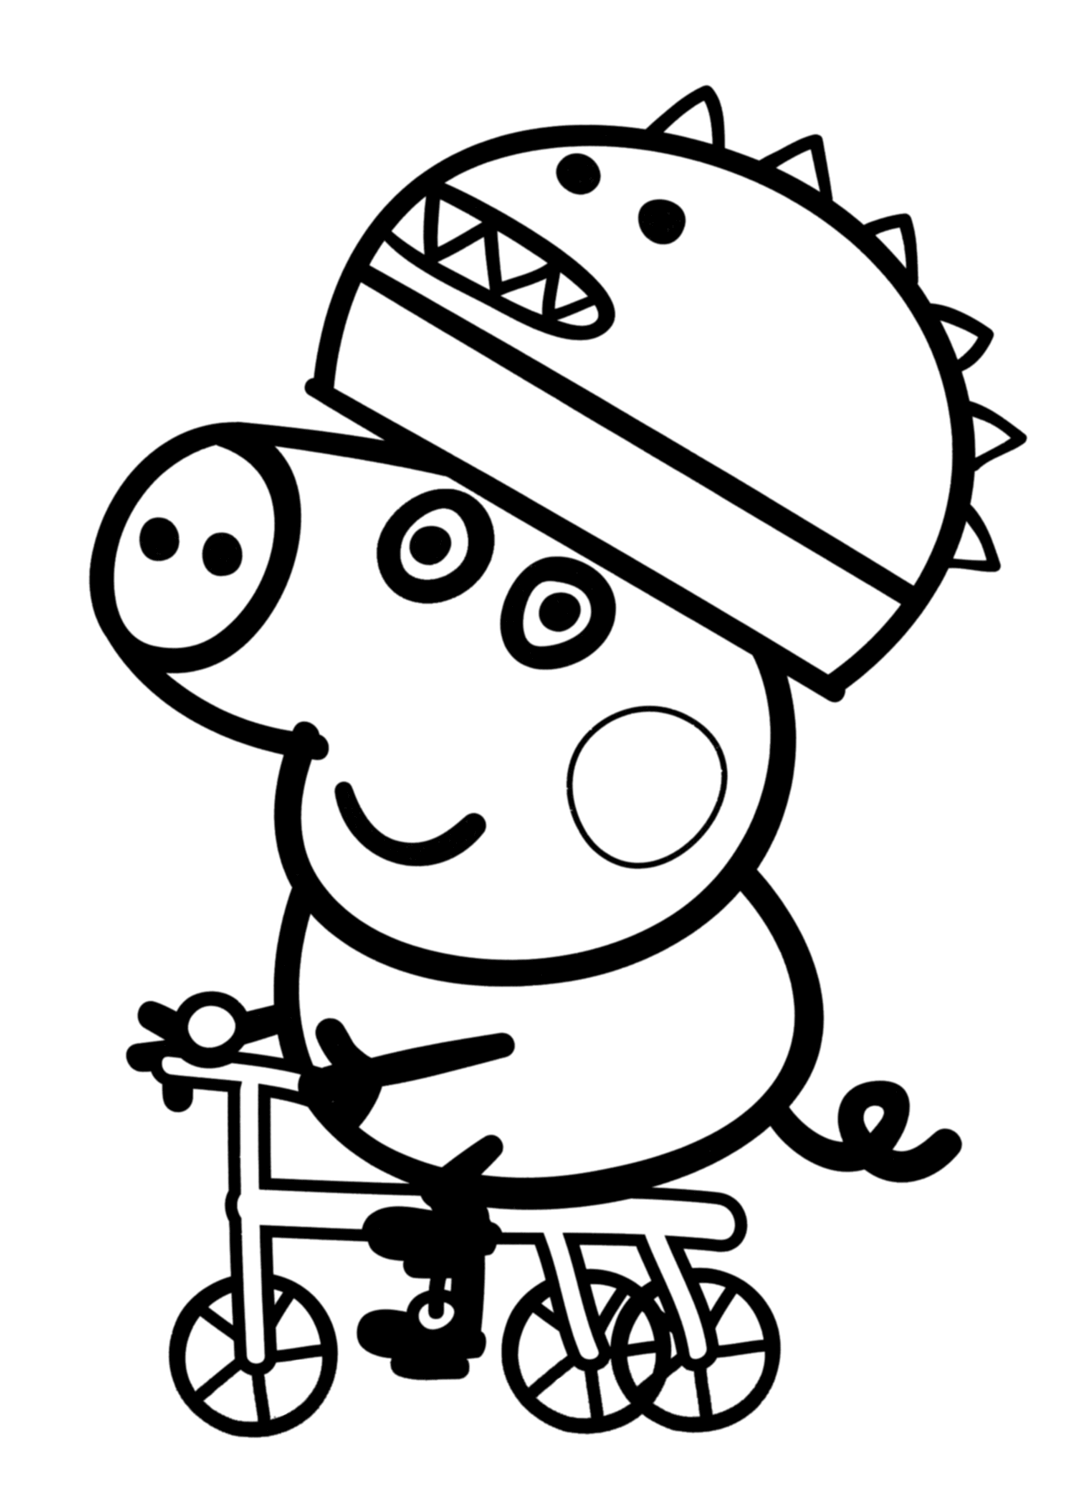 coloring page of pig three little pigs coloring pages for preschool learning of pig coloring page